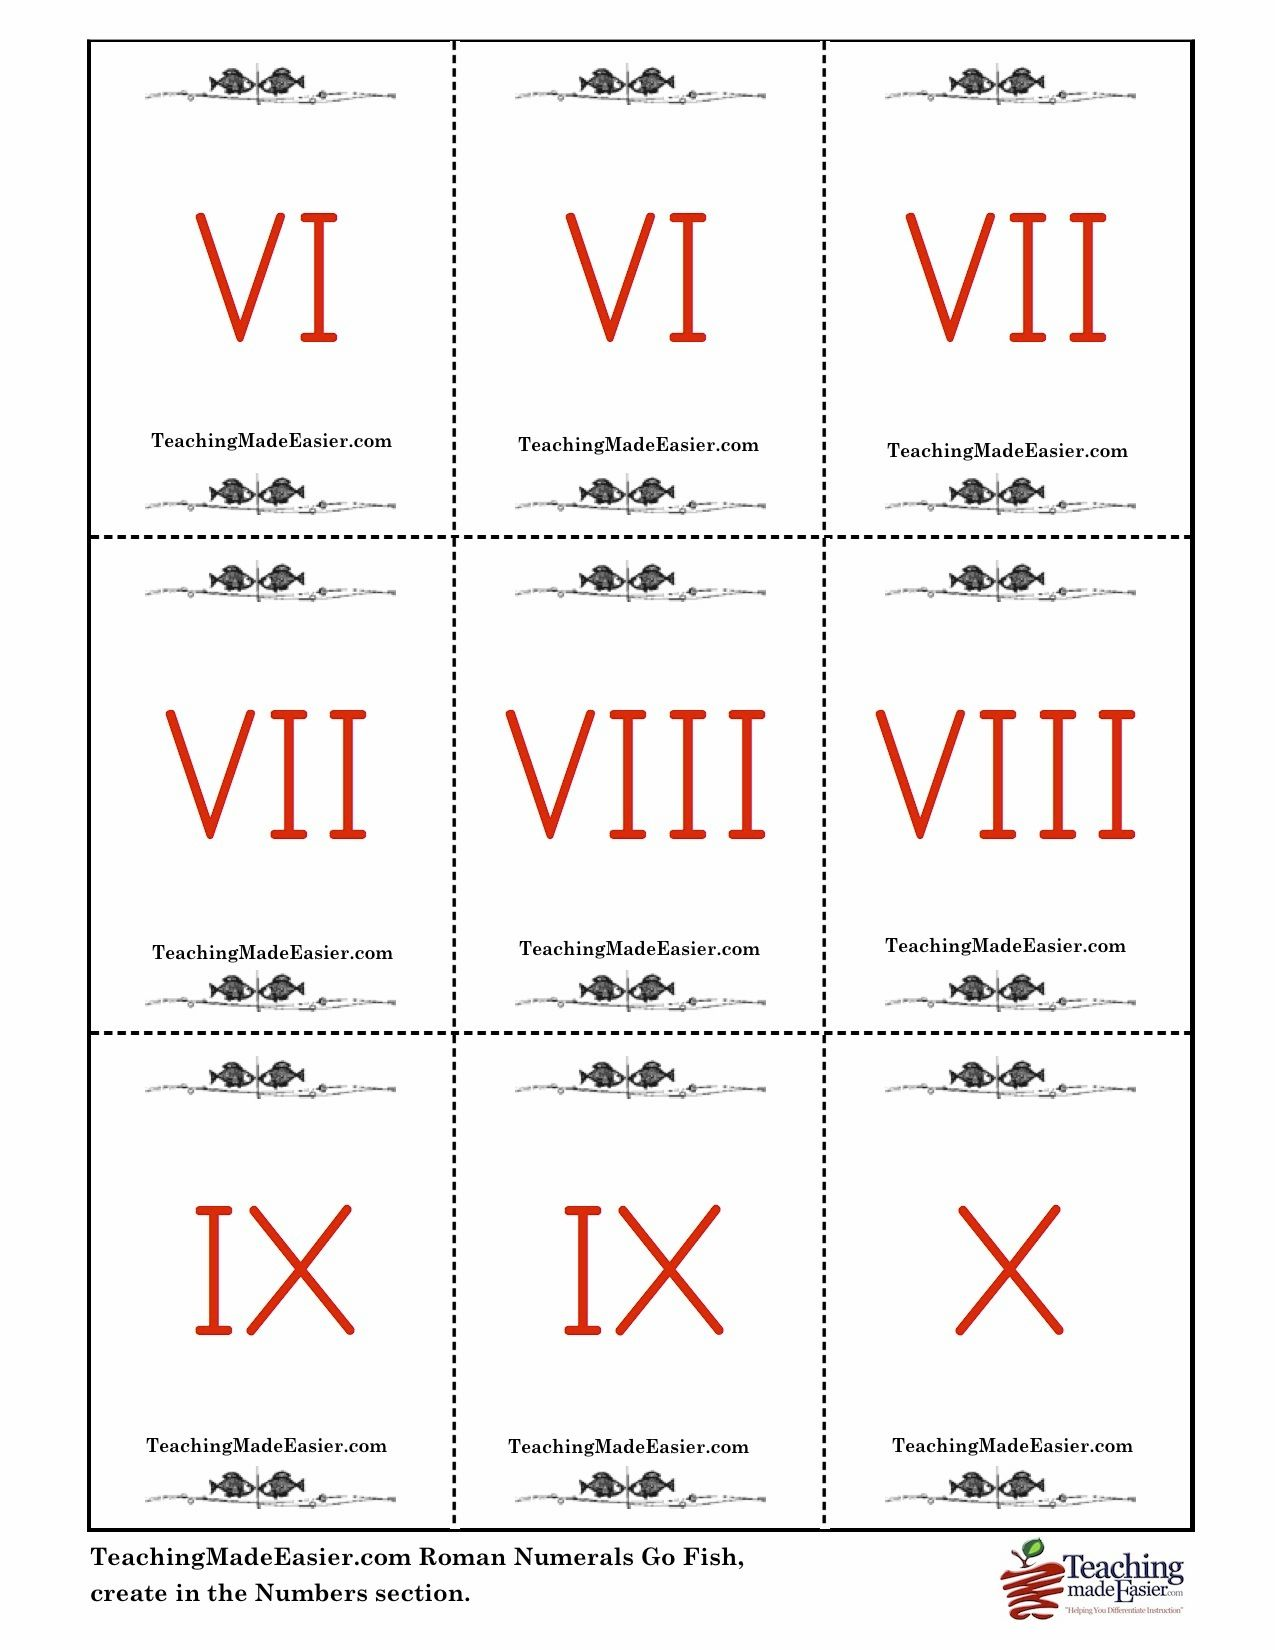 Create Roman Numerals Go Fish In Teachingmadeeasier S Numbers Section